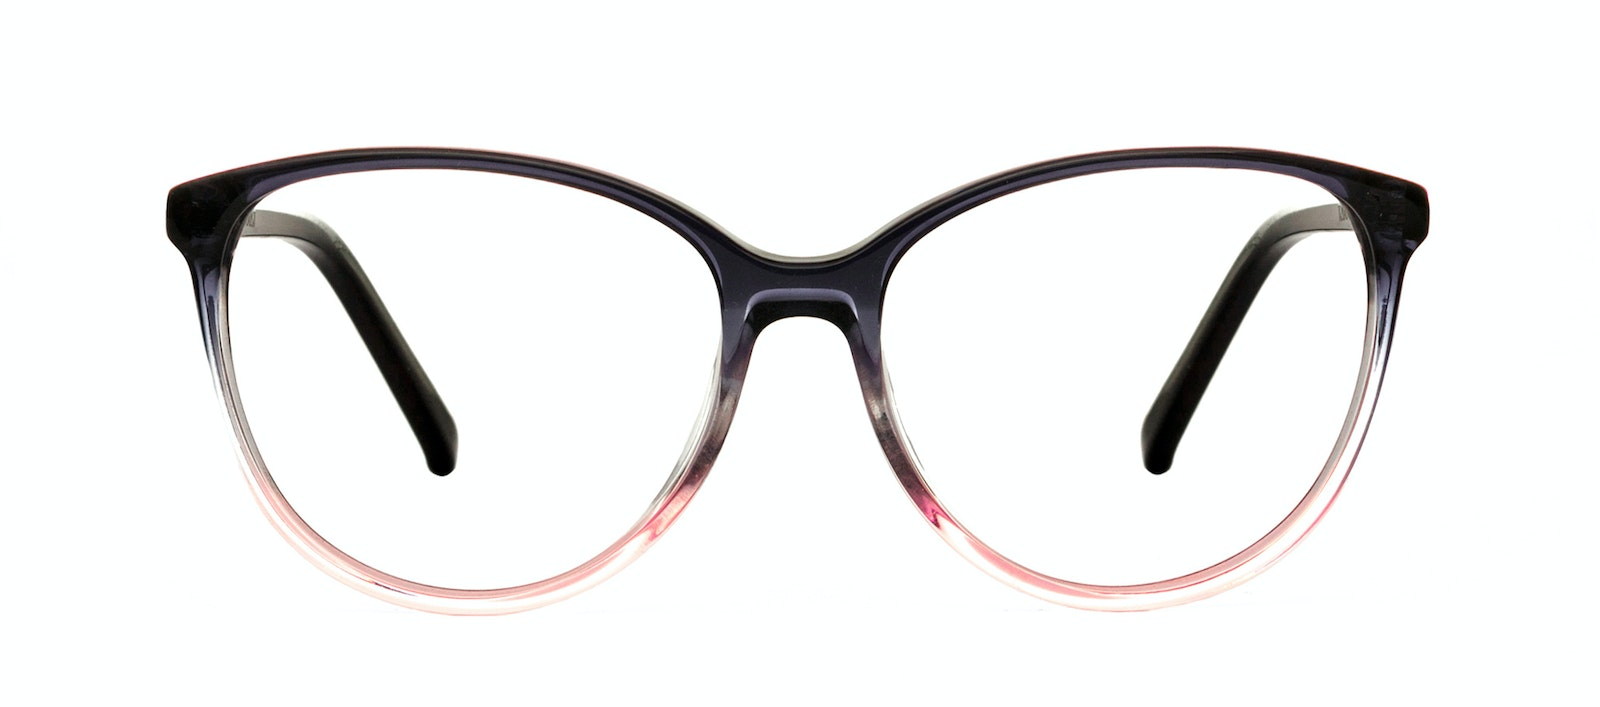 b68a5c408888 Affordable Fashion Glasses Round Eyeglasses Women Imagine Pink Dust Front